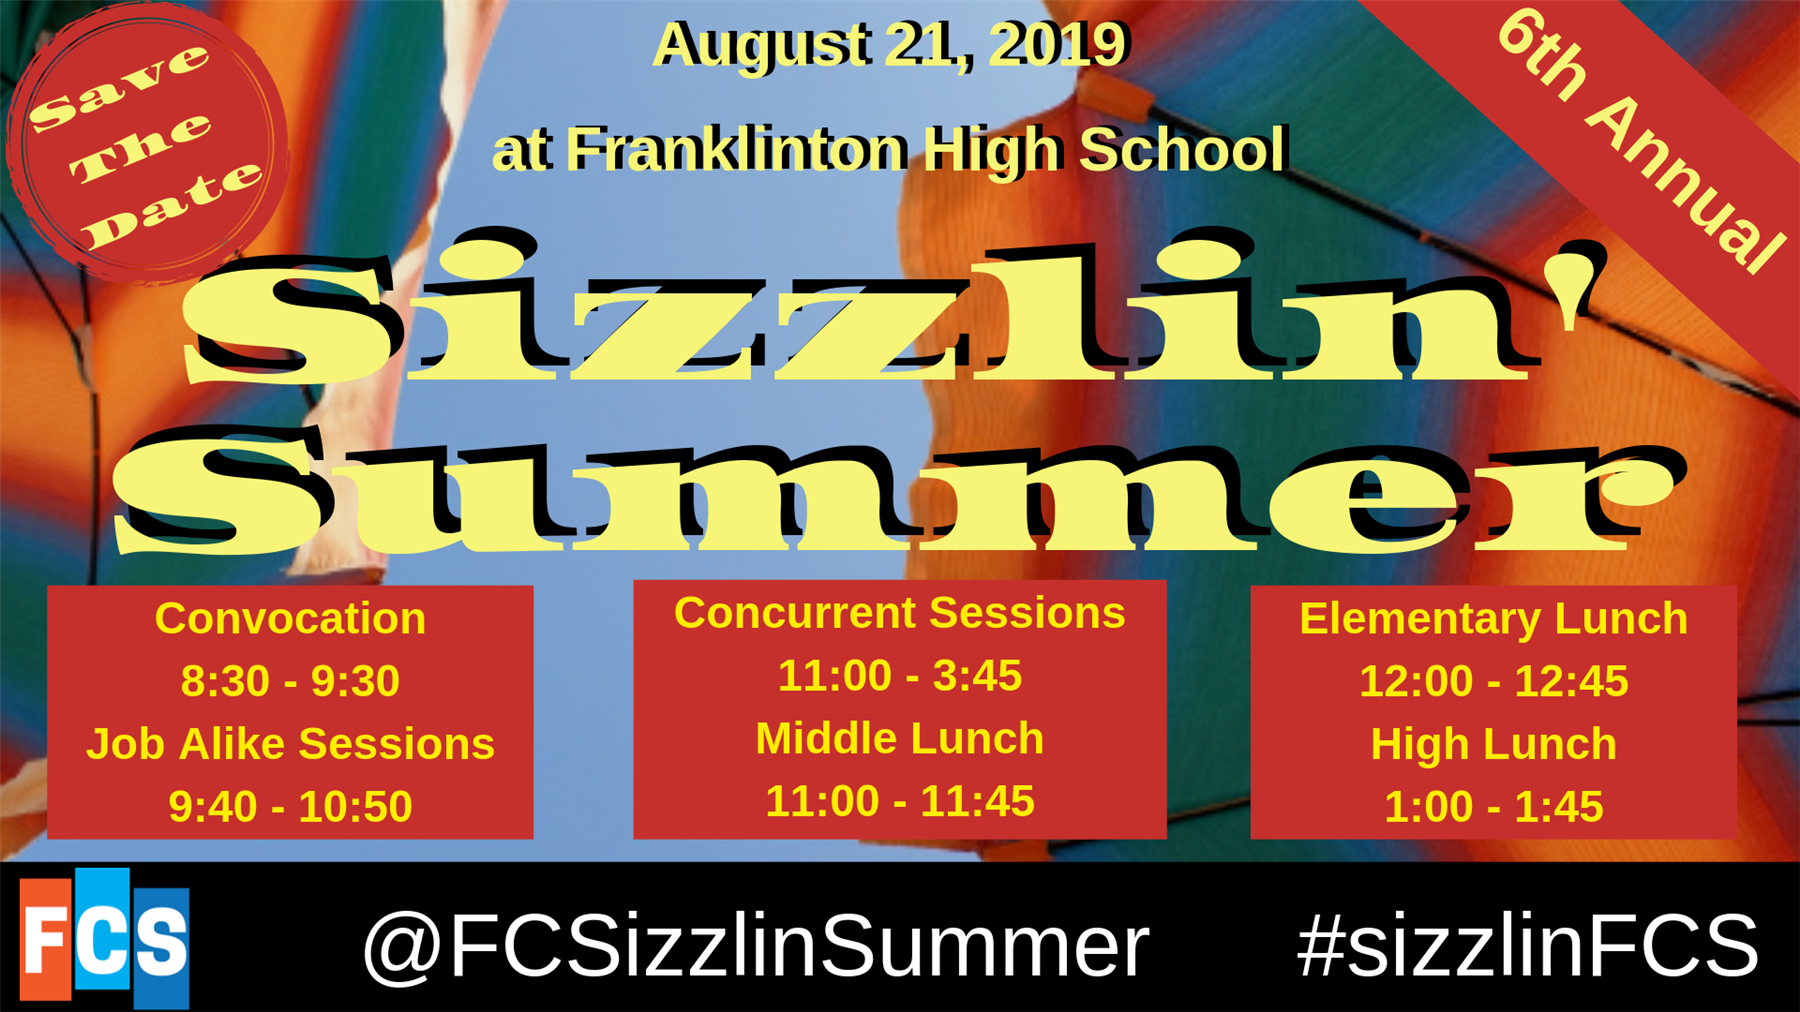 Convocation & Sizzlin' Summer_August 21st